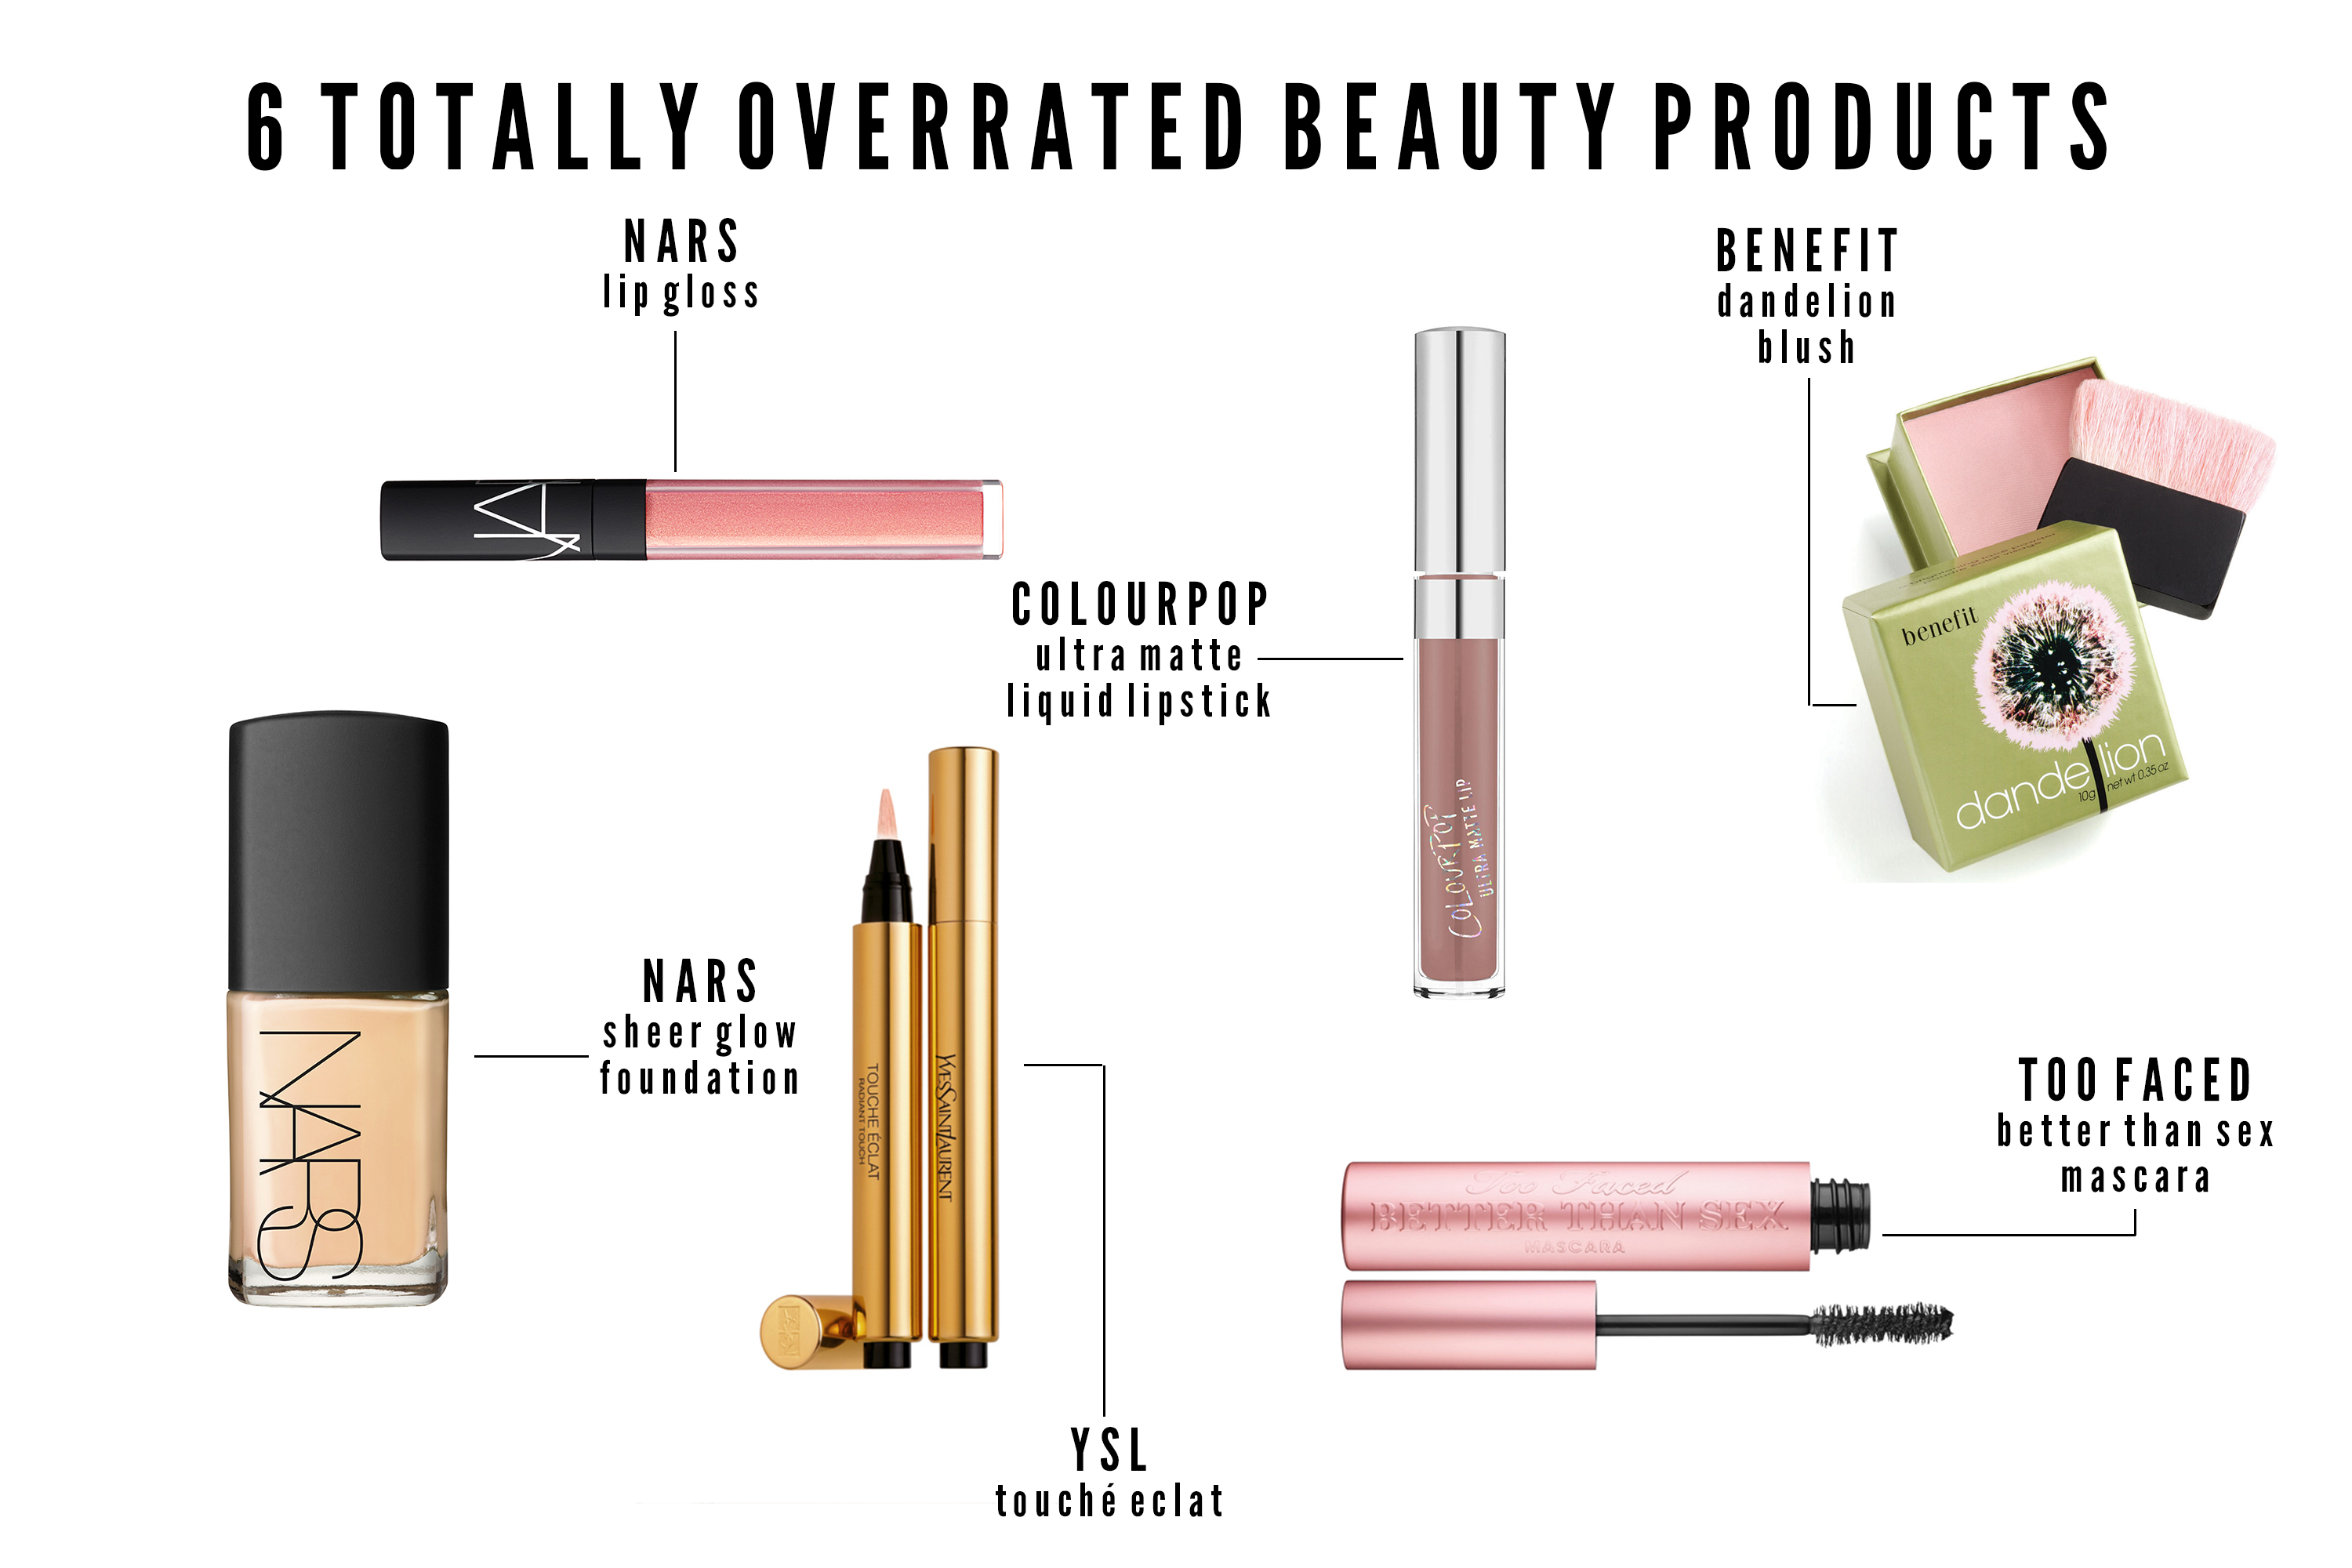 6-totally-overrated-beauty-products